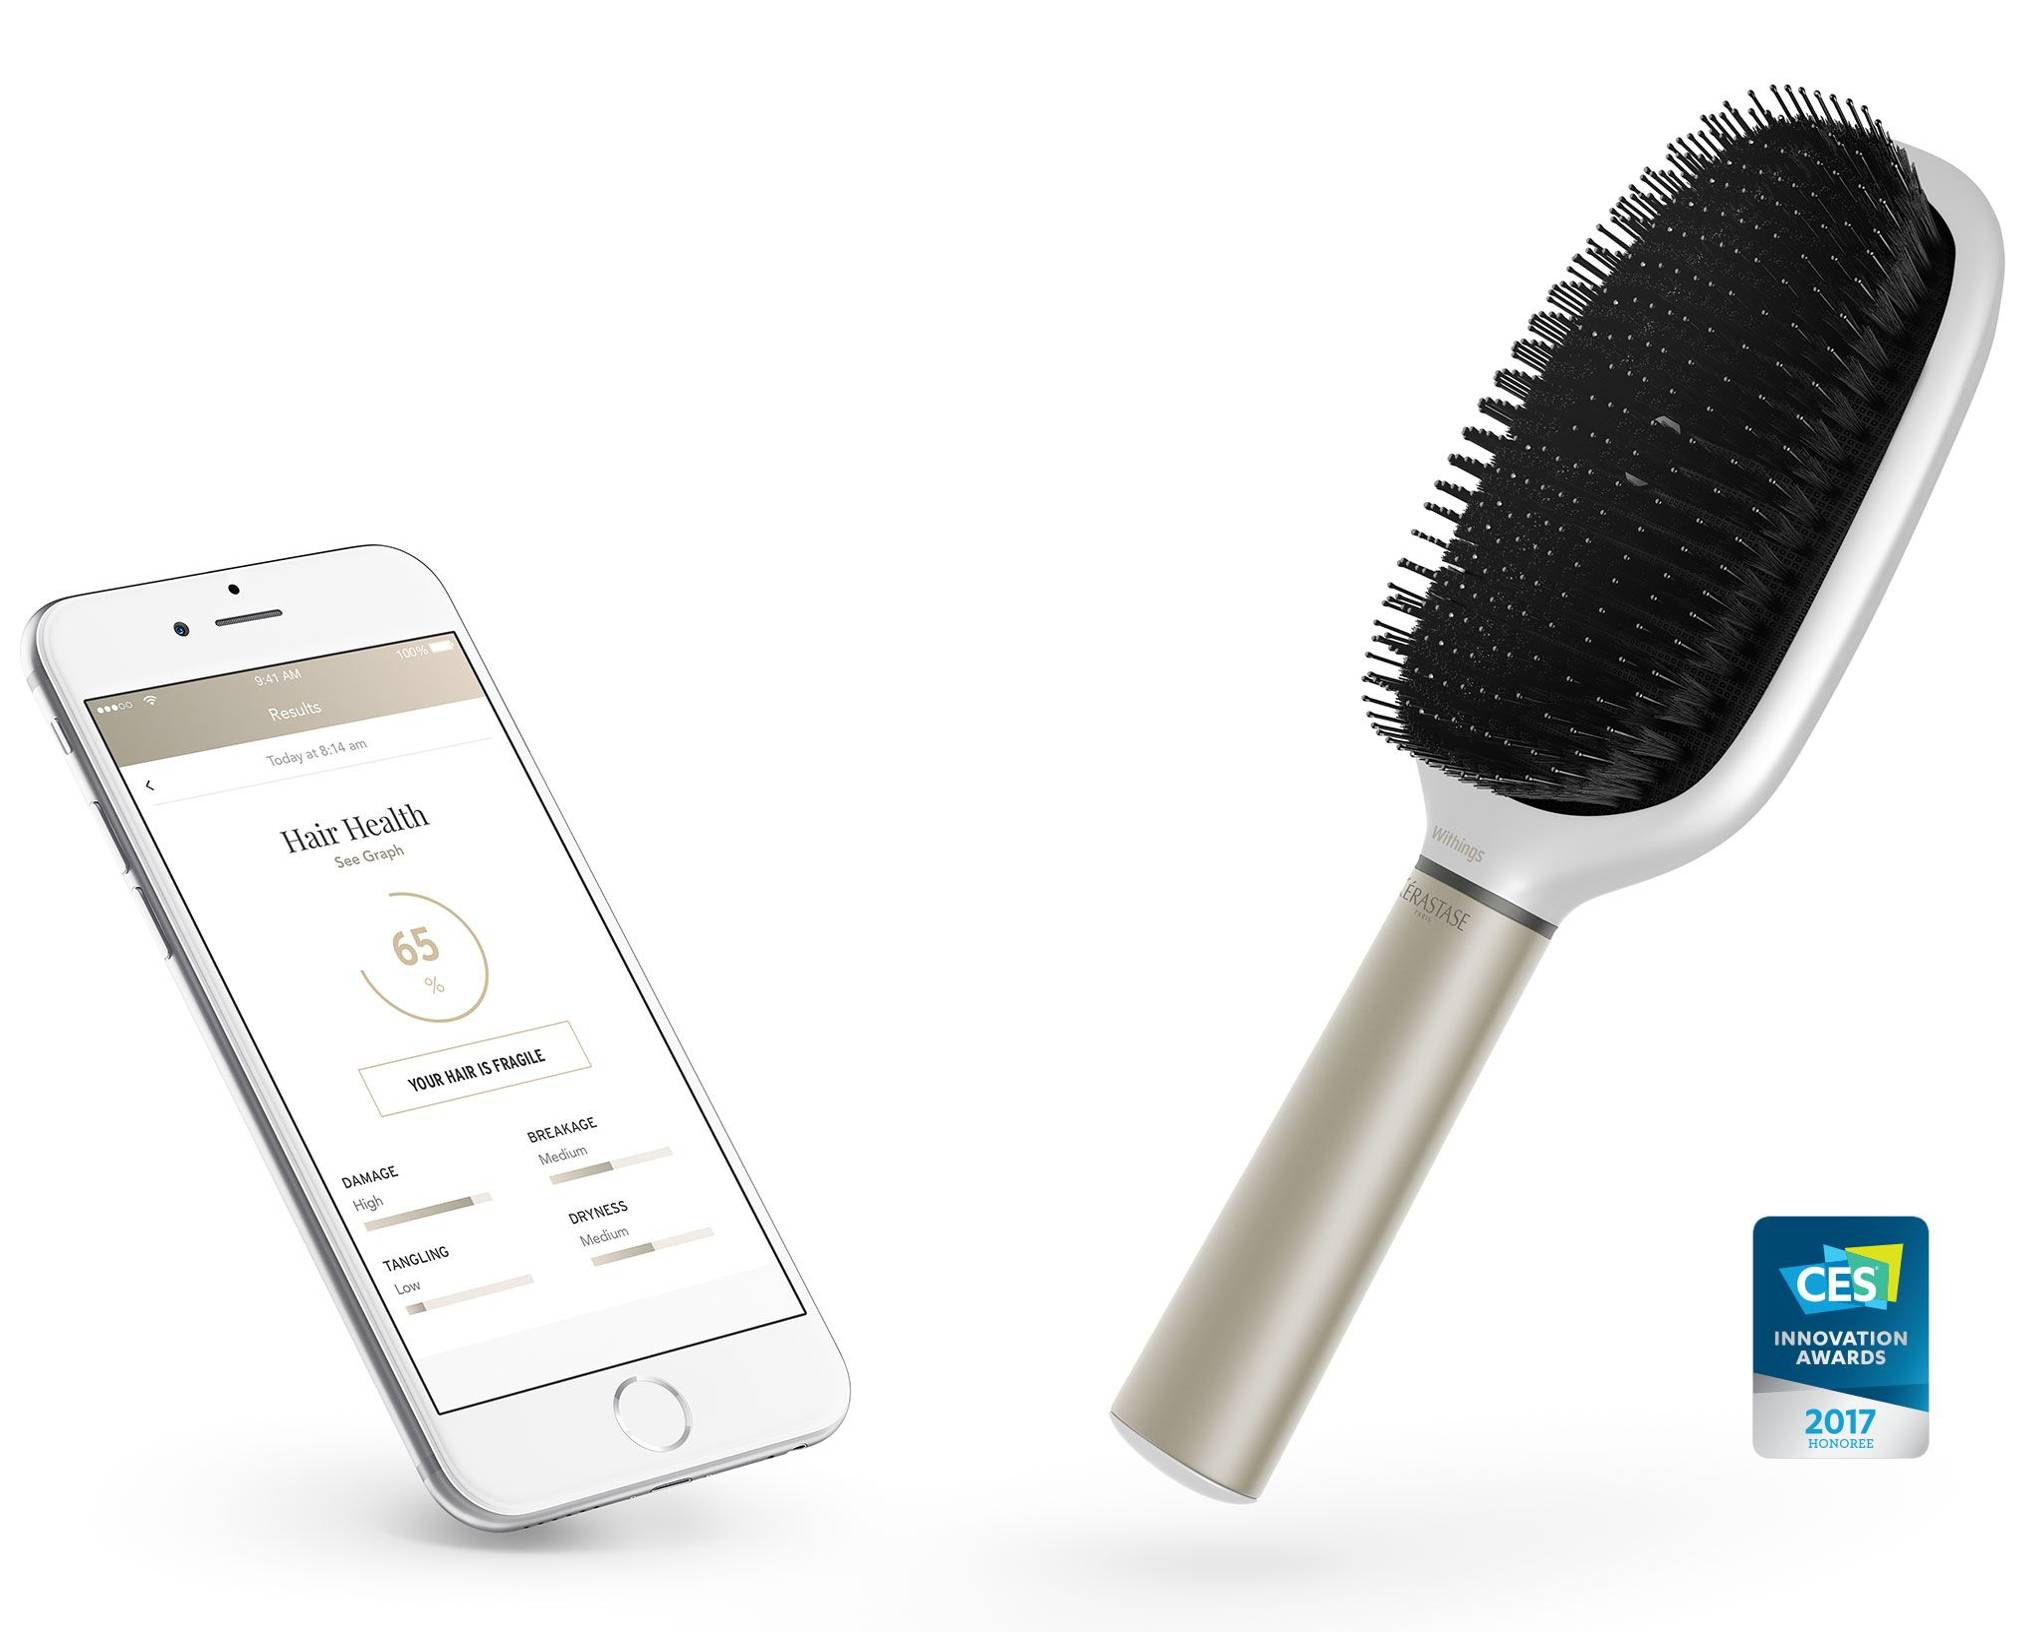 Loral Withings And Krastase Have Launched An Internet Connect Hair Brus Hairbrush Wired Uk